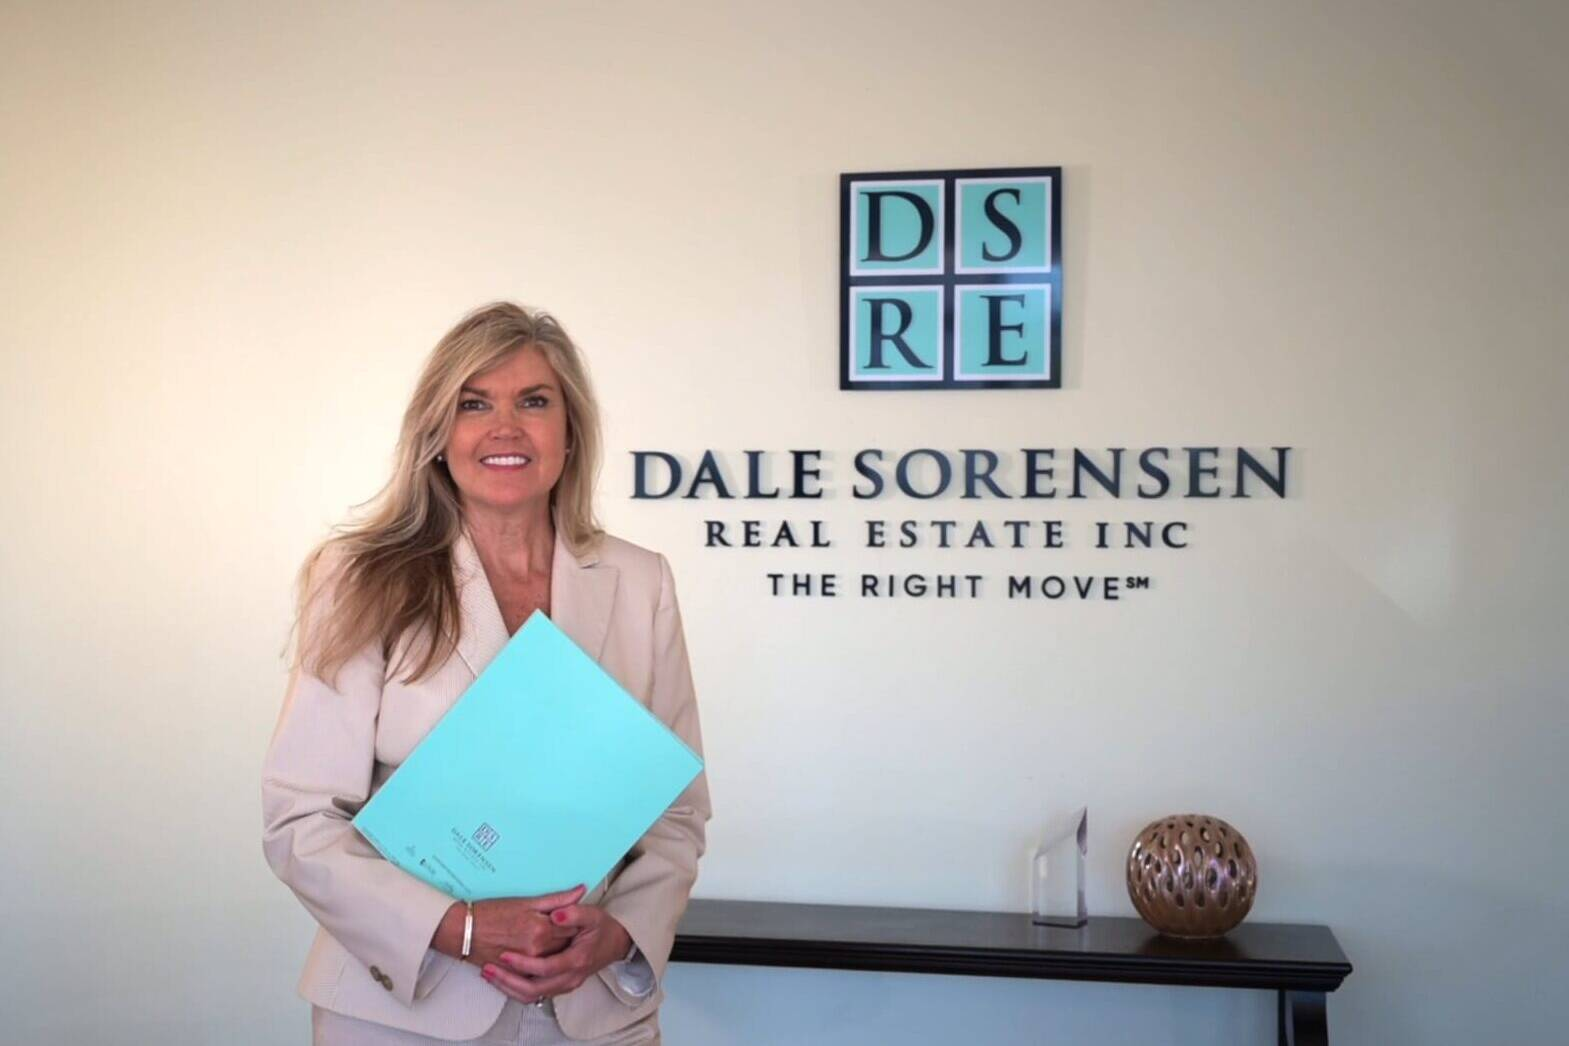 We produced a brand story video Dale Sorensen Real Estate agent Cindy Forstall